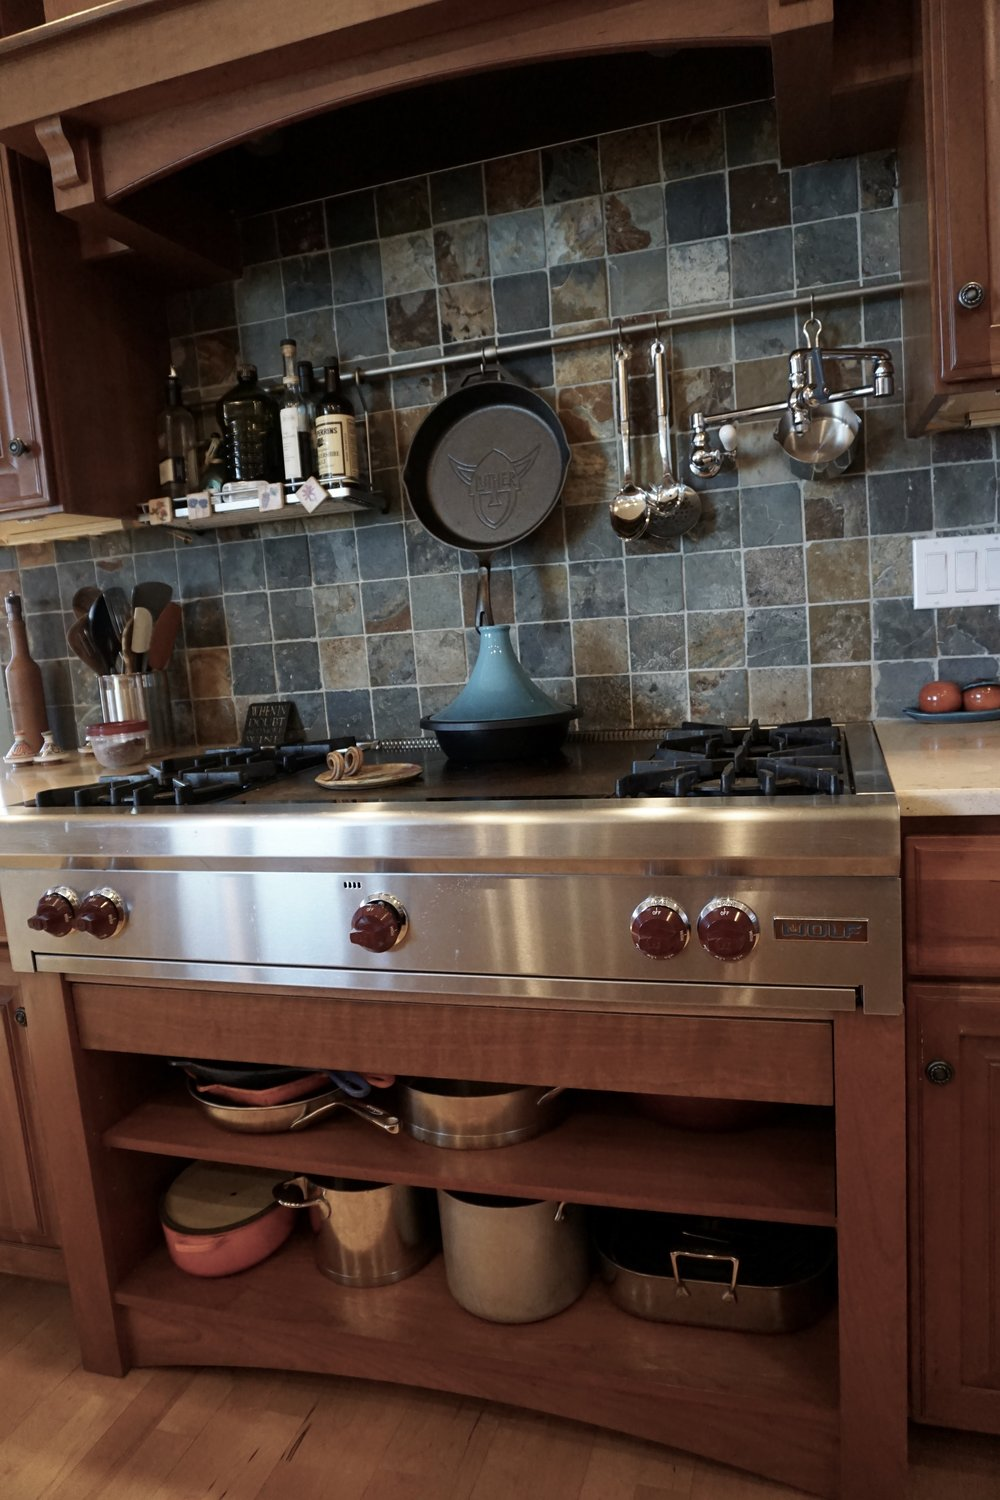 WOLF COOKTOP, POT FILLER FAUCET, OPEN POT STORAGE WITH LID DRAWER